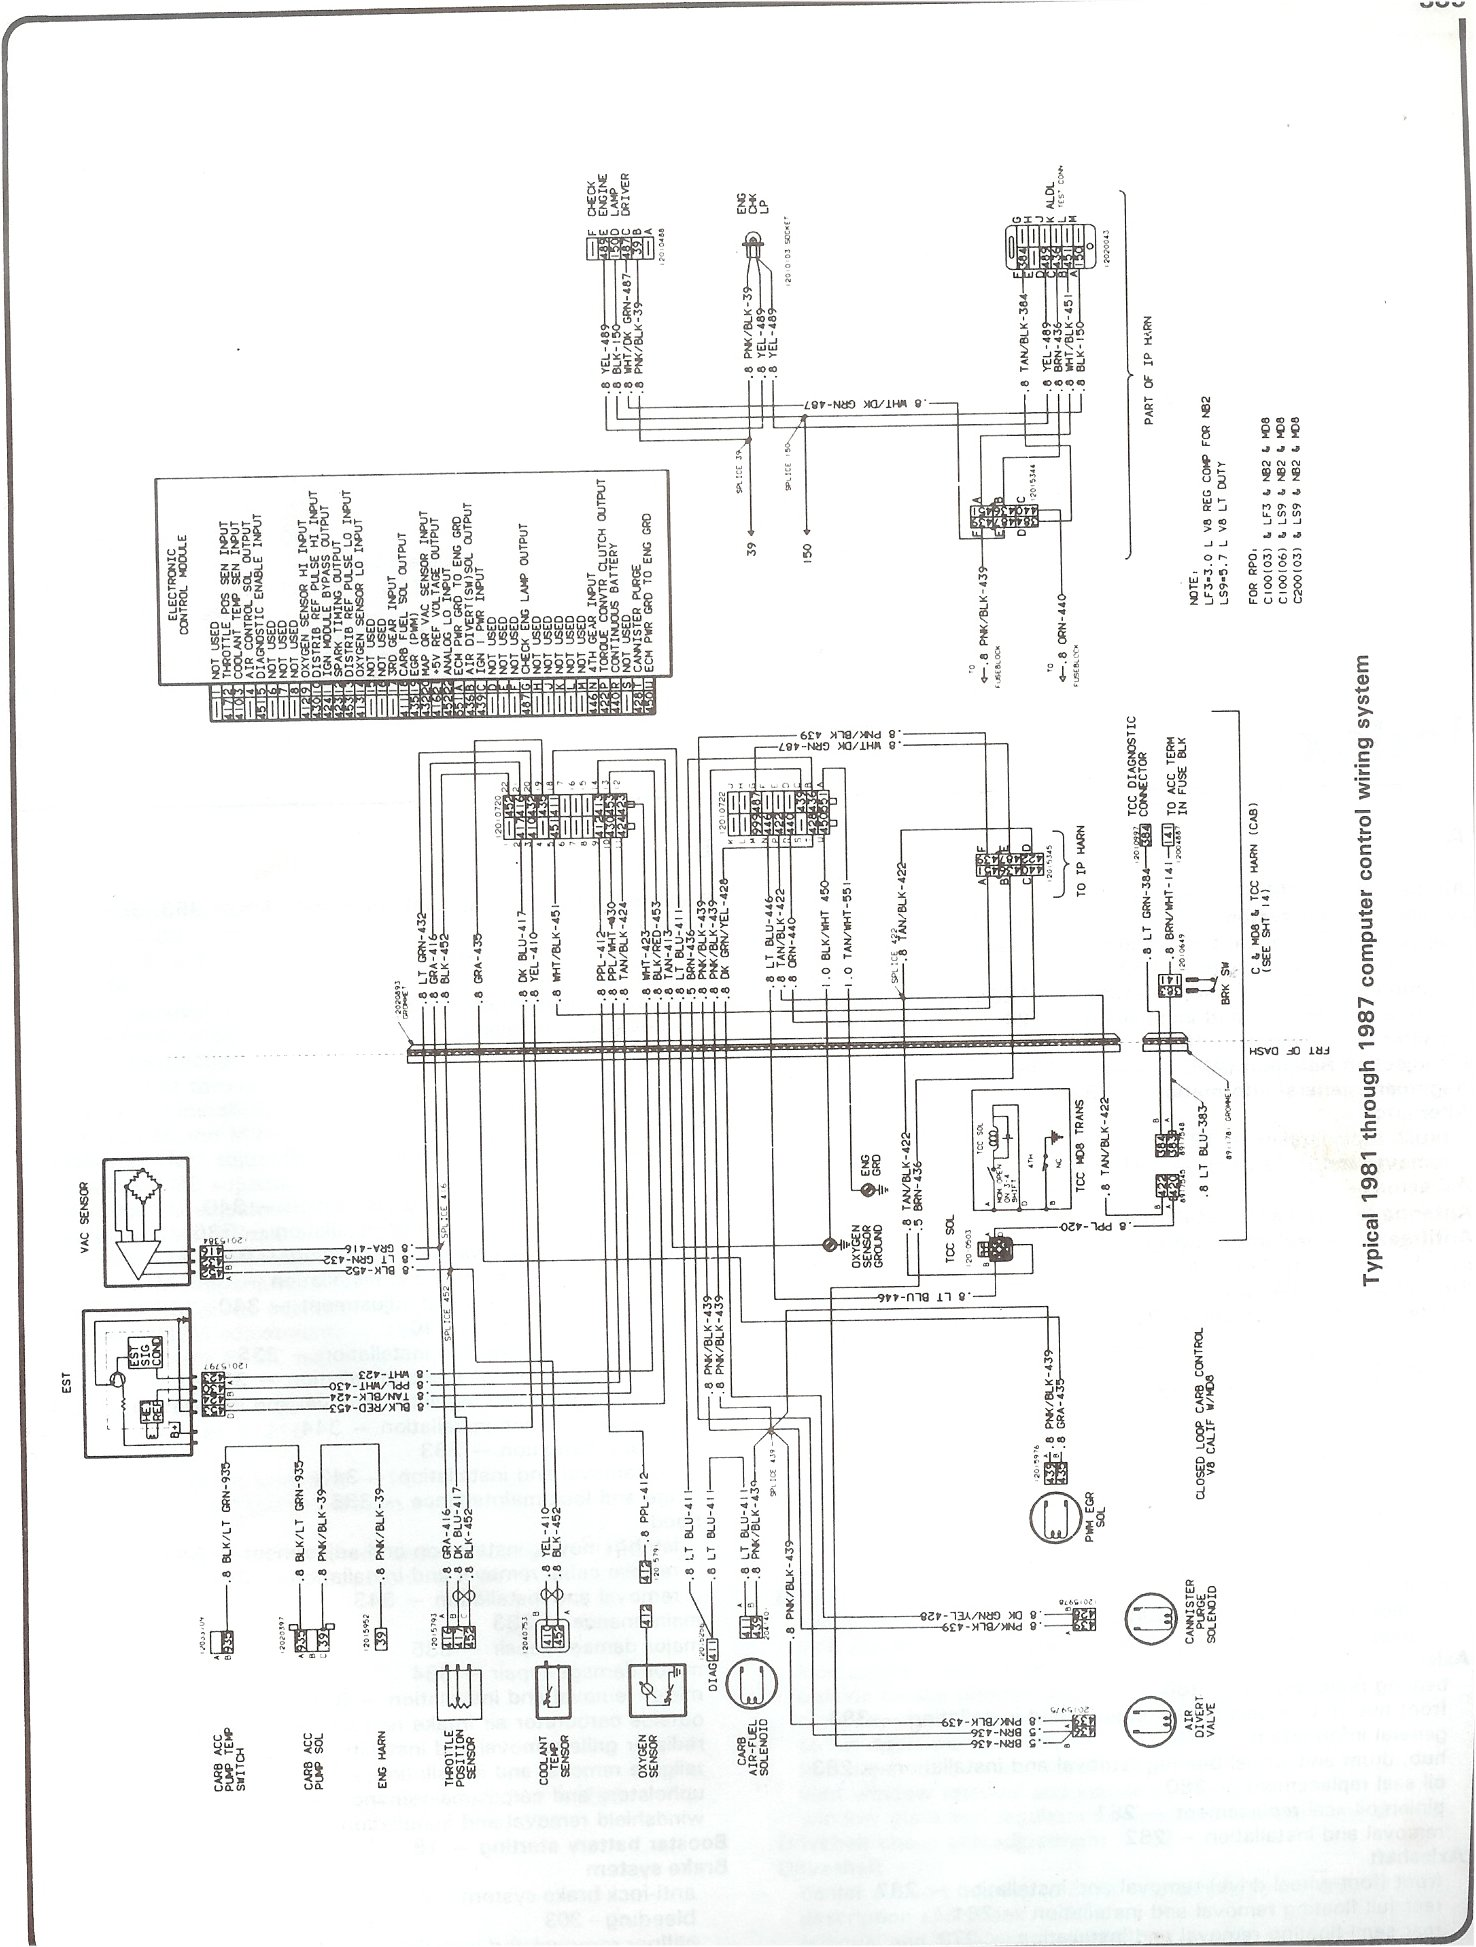 81 87_computer_control_wiring complete 73 87 wiring diagrams 1984 chevy truck ignition wiring diagram at soozxer.org